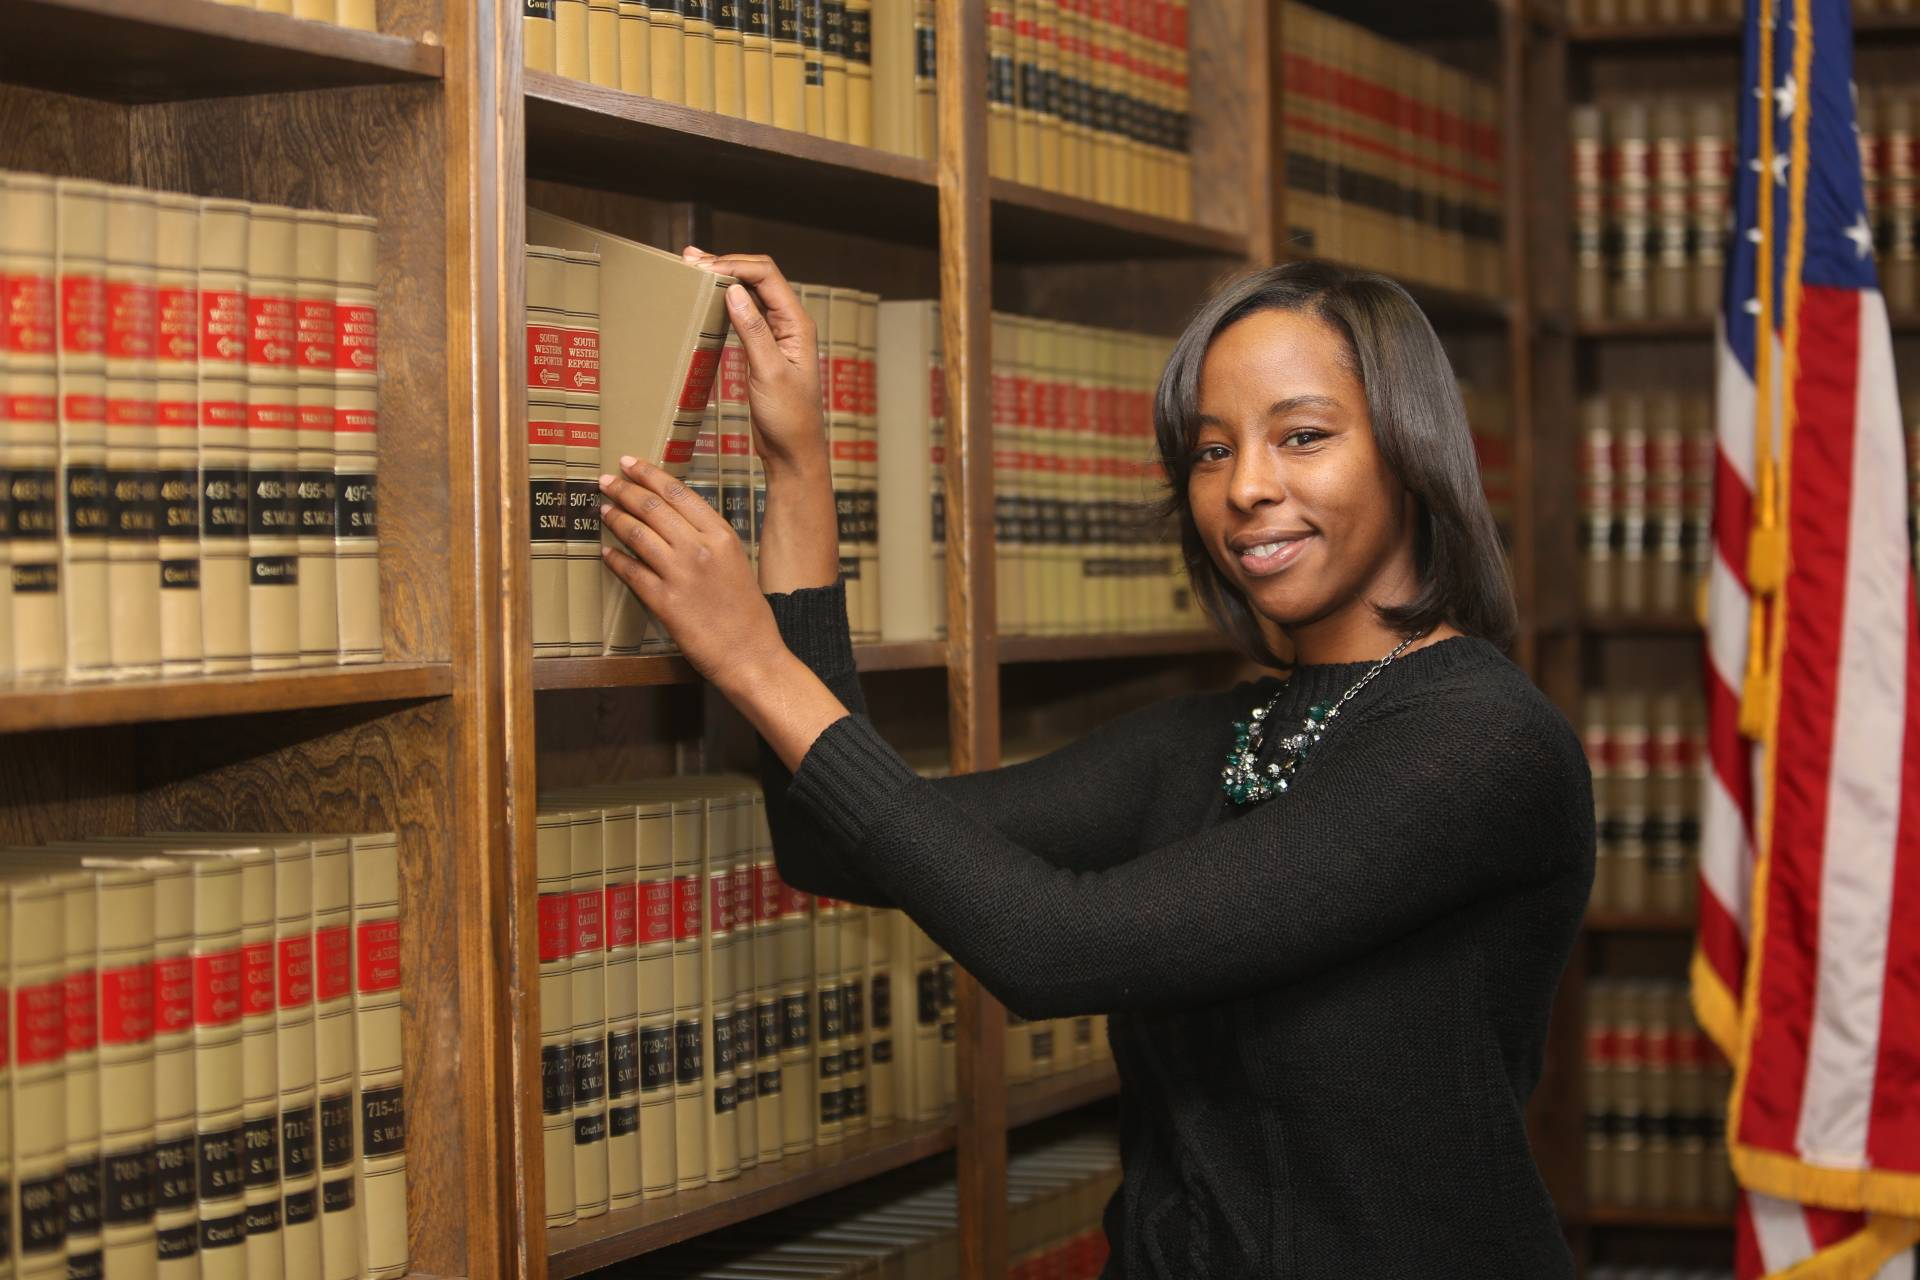 The personal injury lawyers at the angell law firm are here for you.